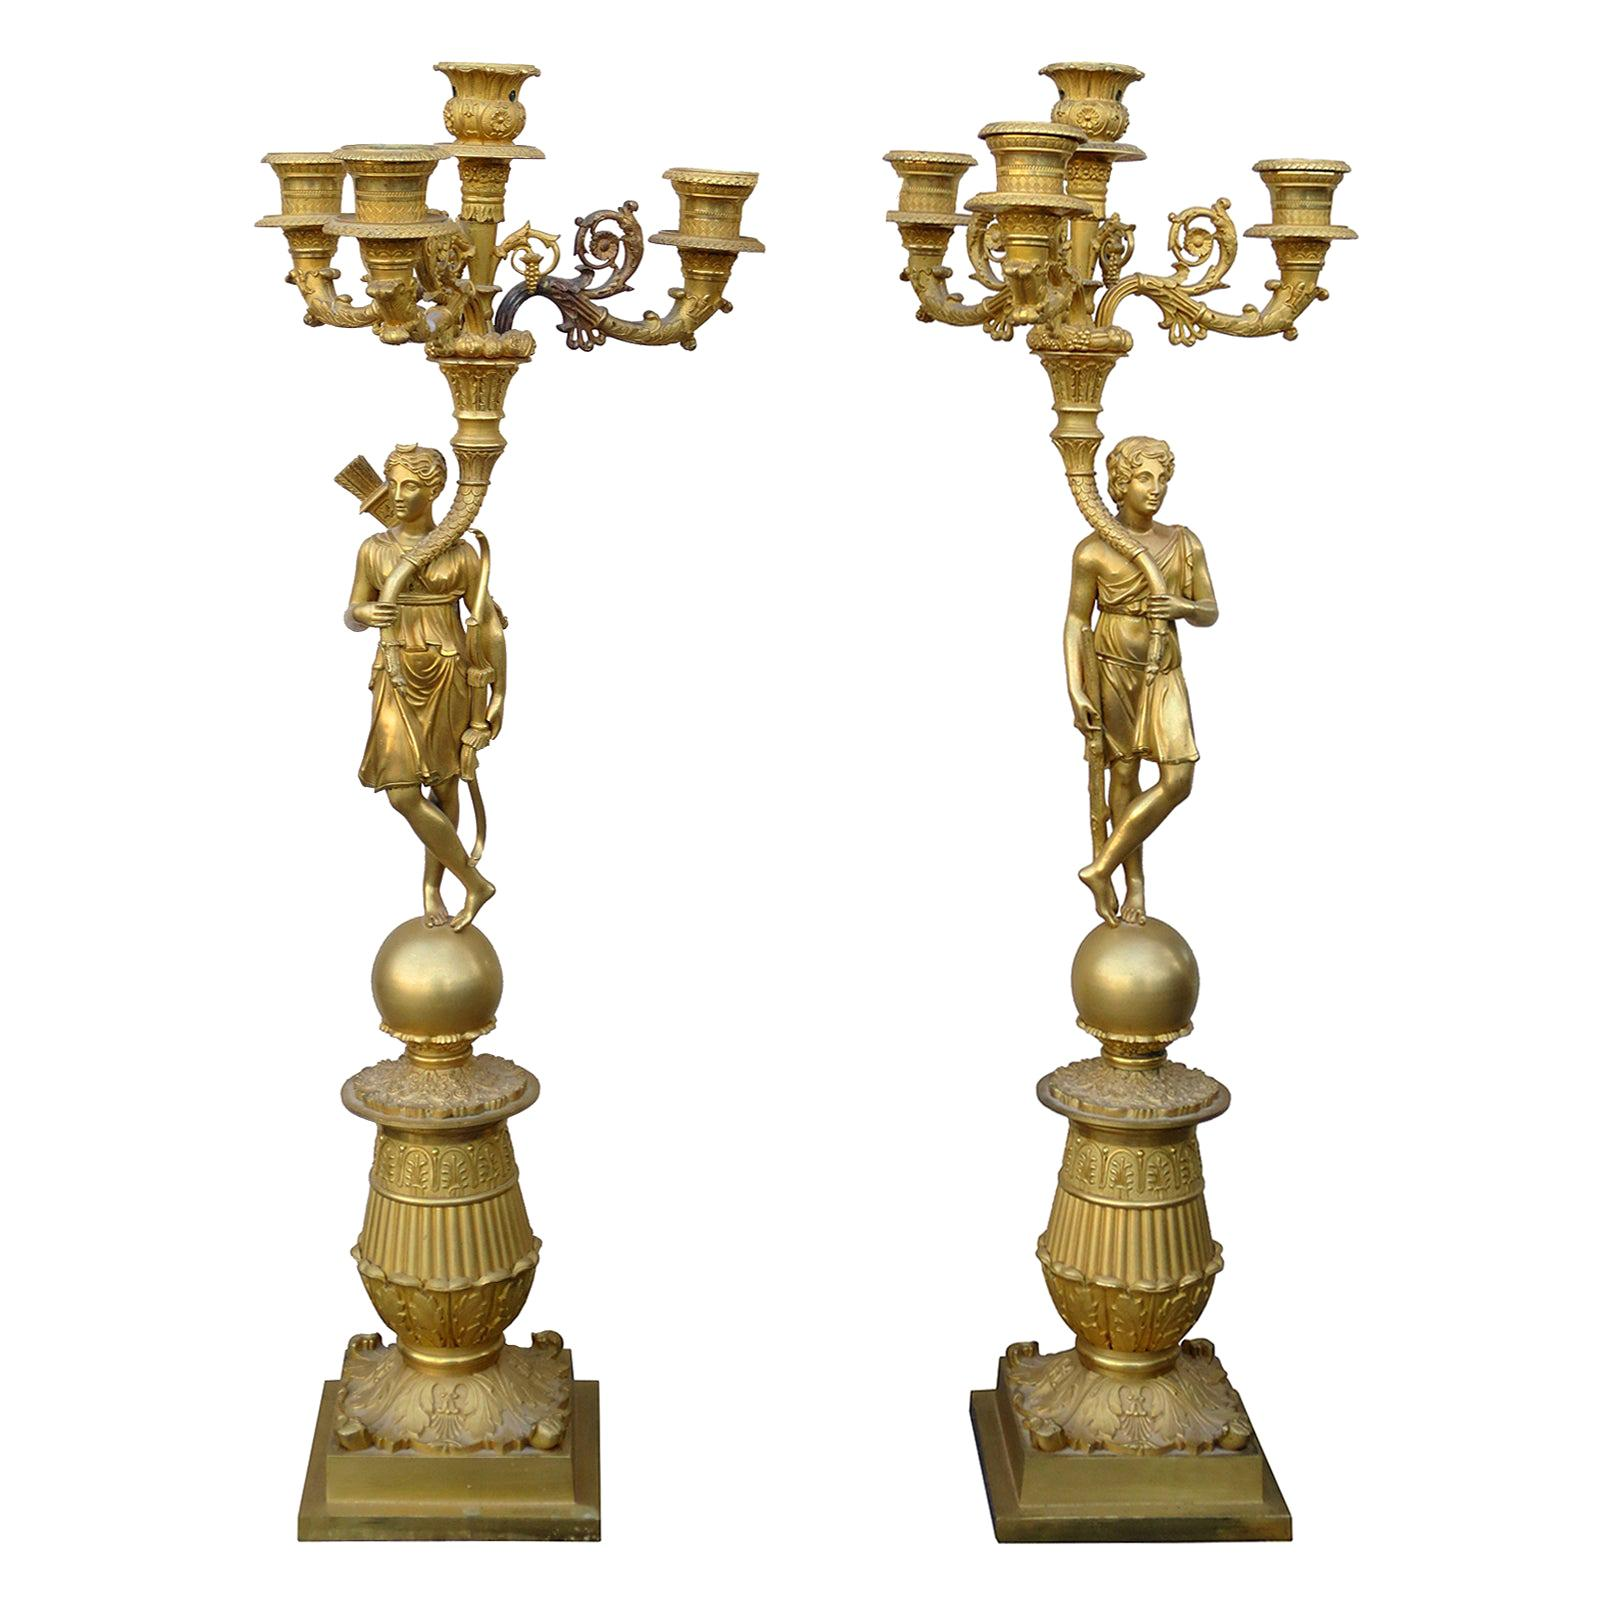 Pair of 19th Century Charles X Gilt Bronze Figural Ormolu Candelabra